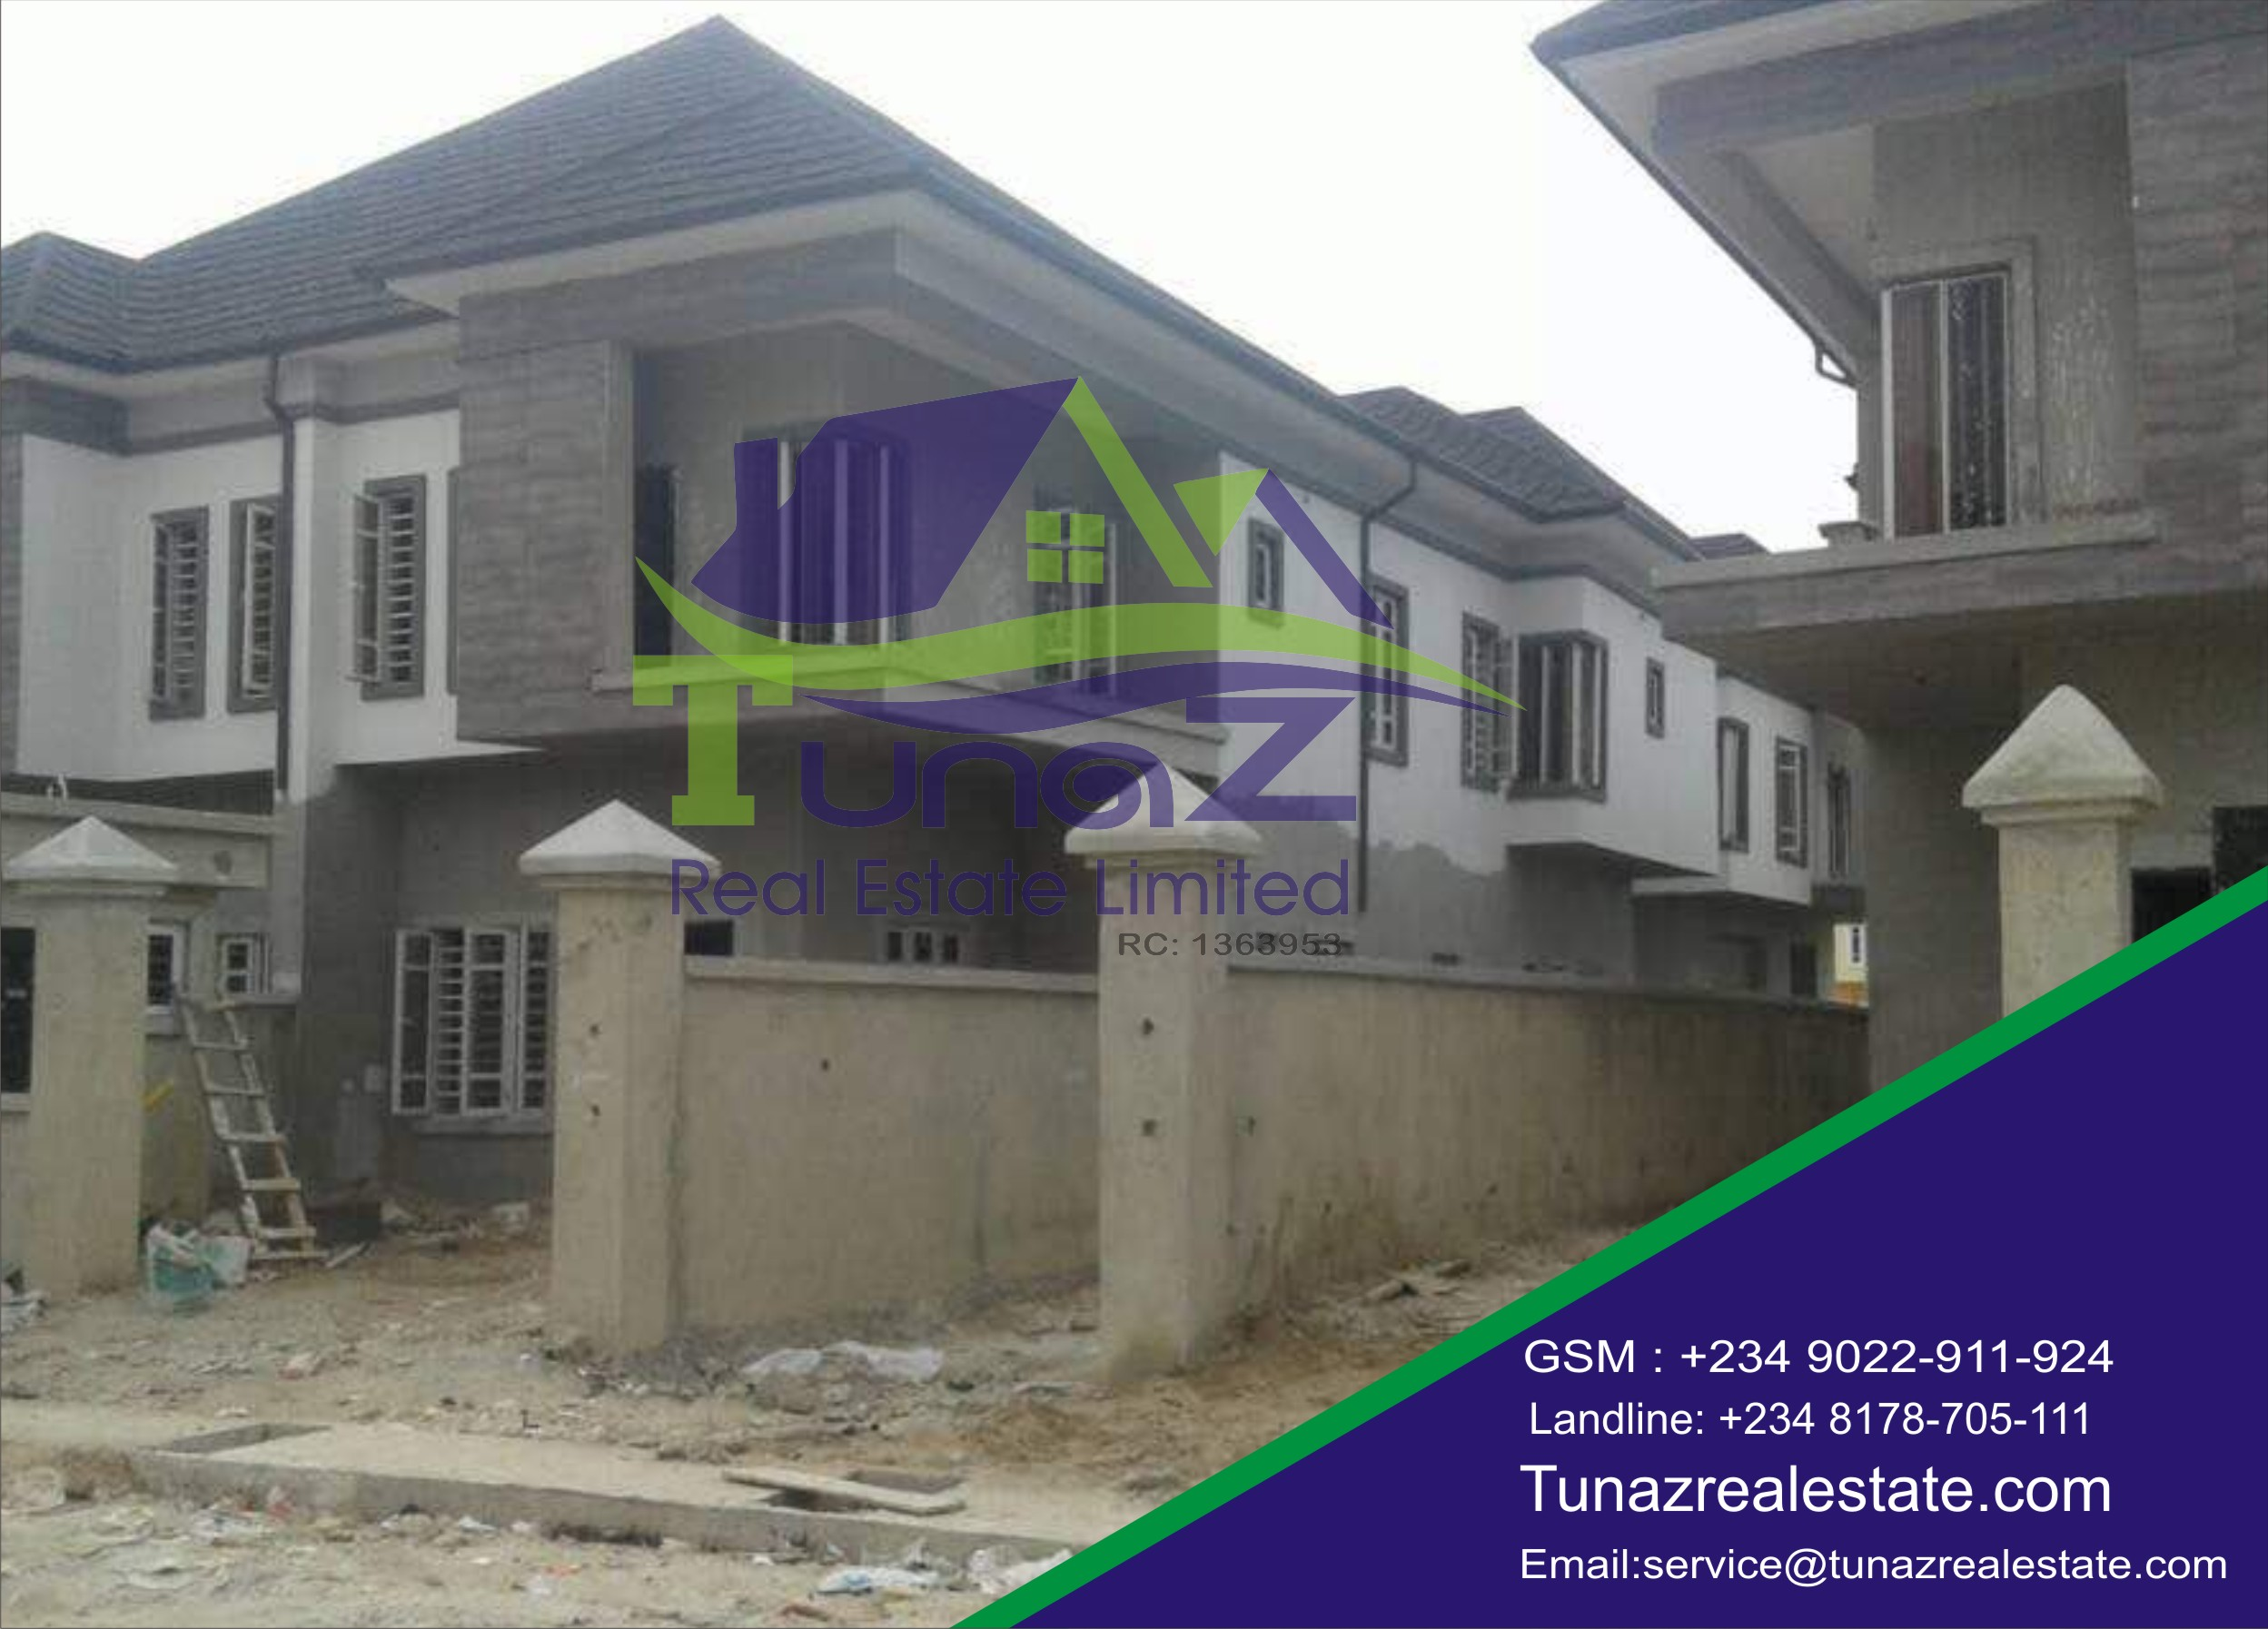 6 Units Of 4 Bedroom Buplex And 3 Units 5 Bedroom Duplexes For Sale